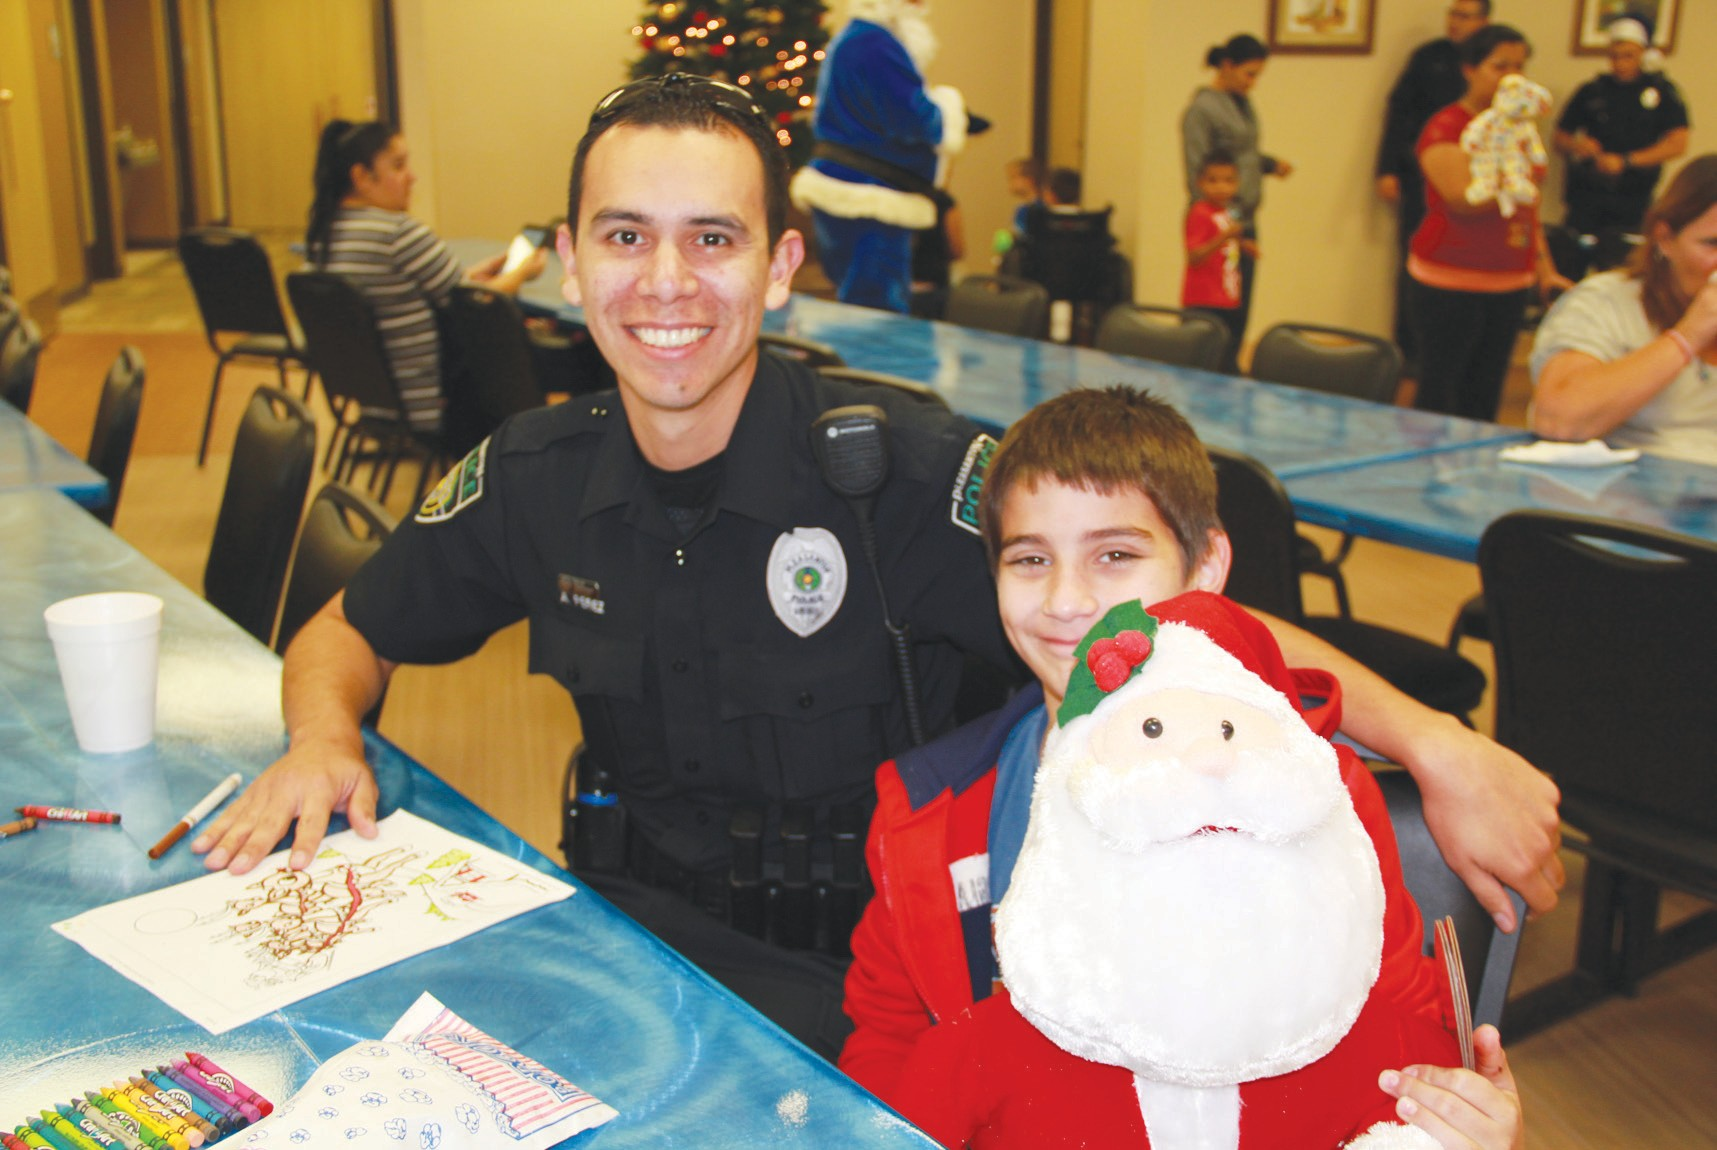 Officer Anastacio Perez interacted with Donovan Alaniz and other local children at the Blue Santa Party.